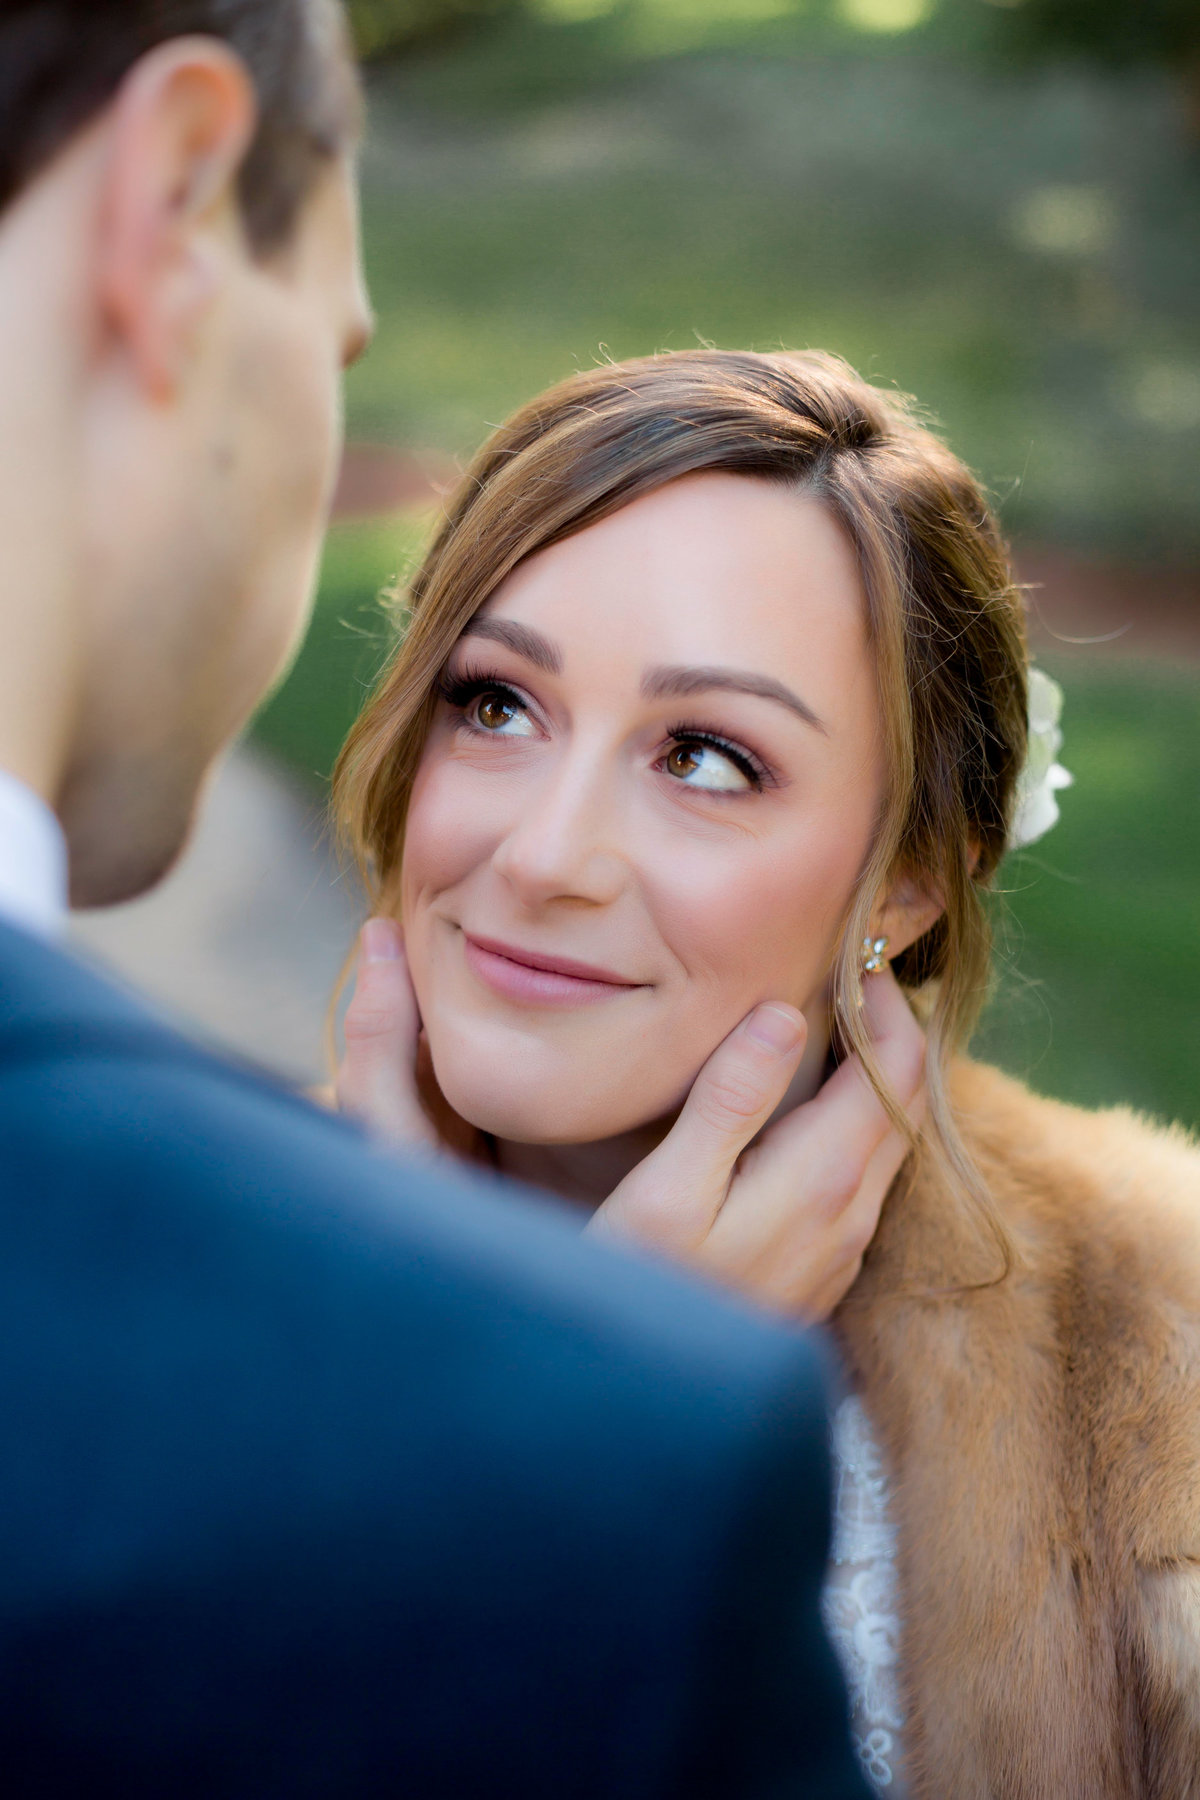 bride and grrom looking into each others eyes for first look while wedding photographer captures moment